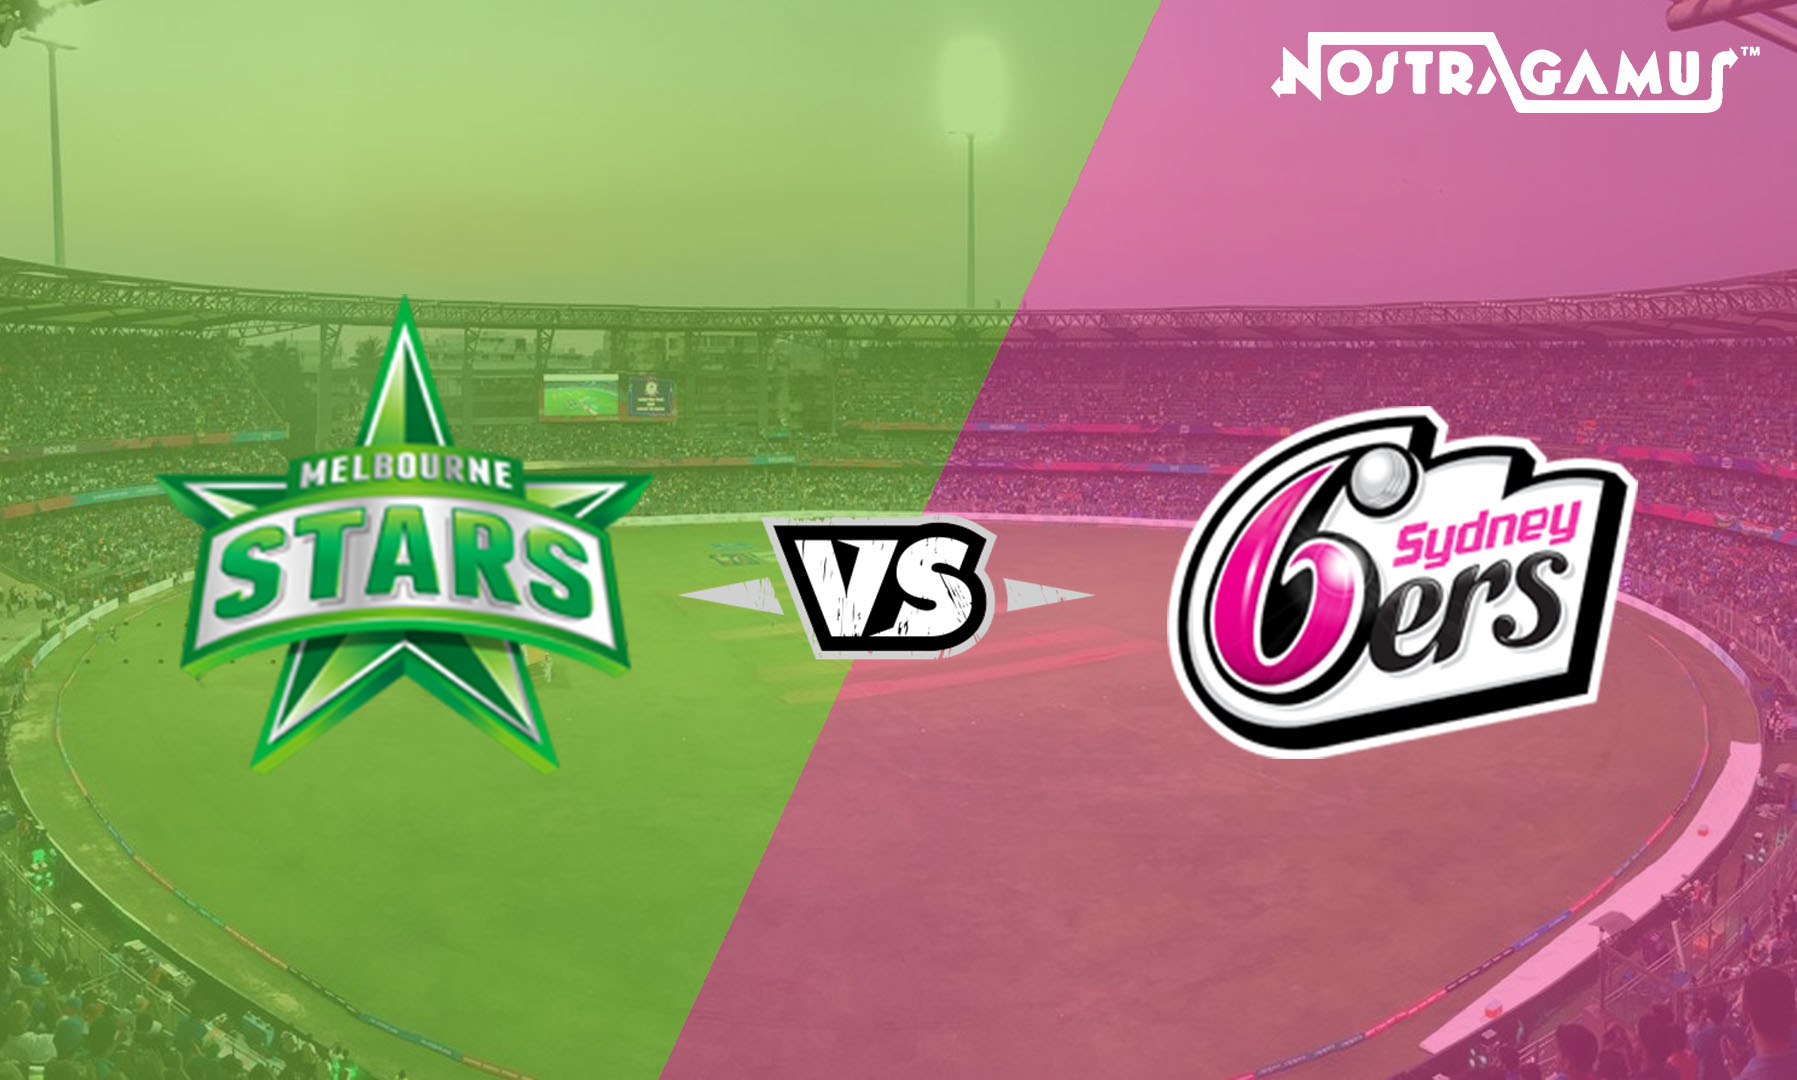 Big Bash League Predictions: Melbourne Stars vs Sydney Sixers